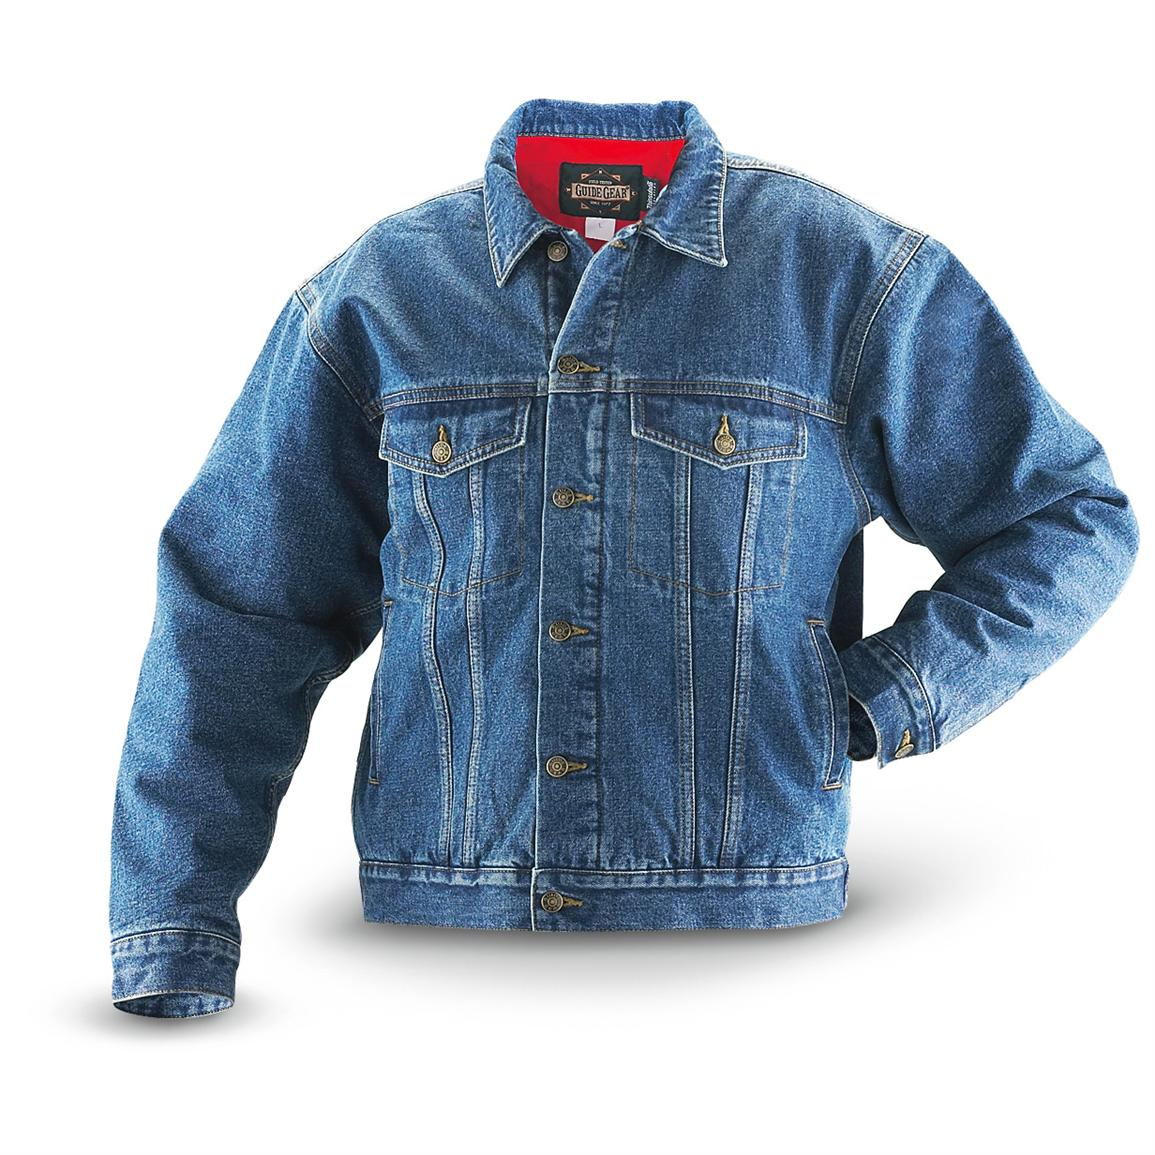 How to Customize Jeans Jackets: Tips, Photos